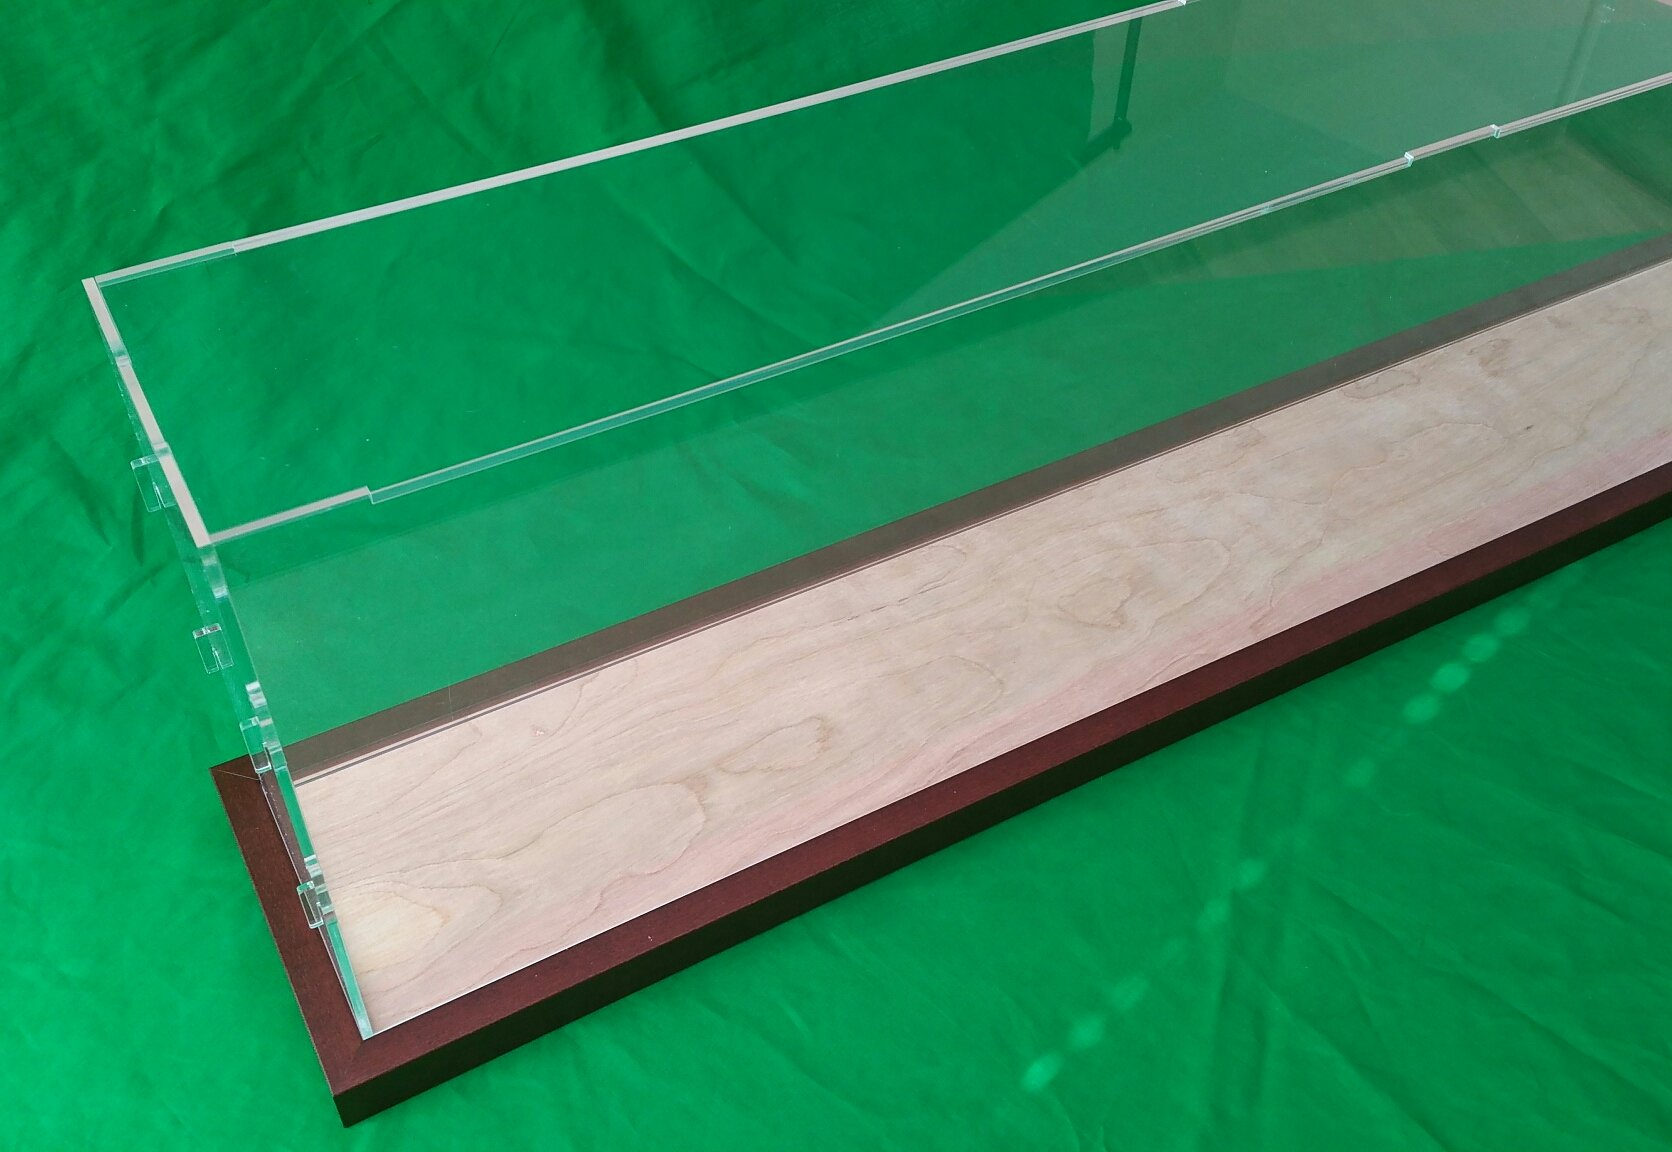 42''L x 6''W x 12''H Display Case Box for Model Cruise Ships and Ocean Liner LGB and G Scale Trains 1/32 1/23 Plexiglass Acrylic by Acrylicjob (Image #9)